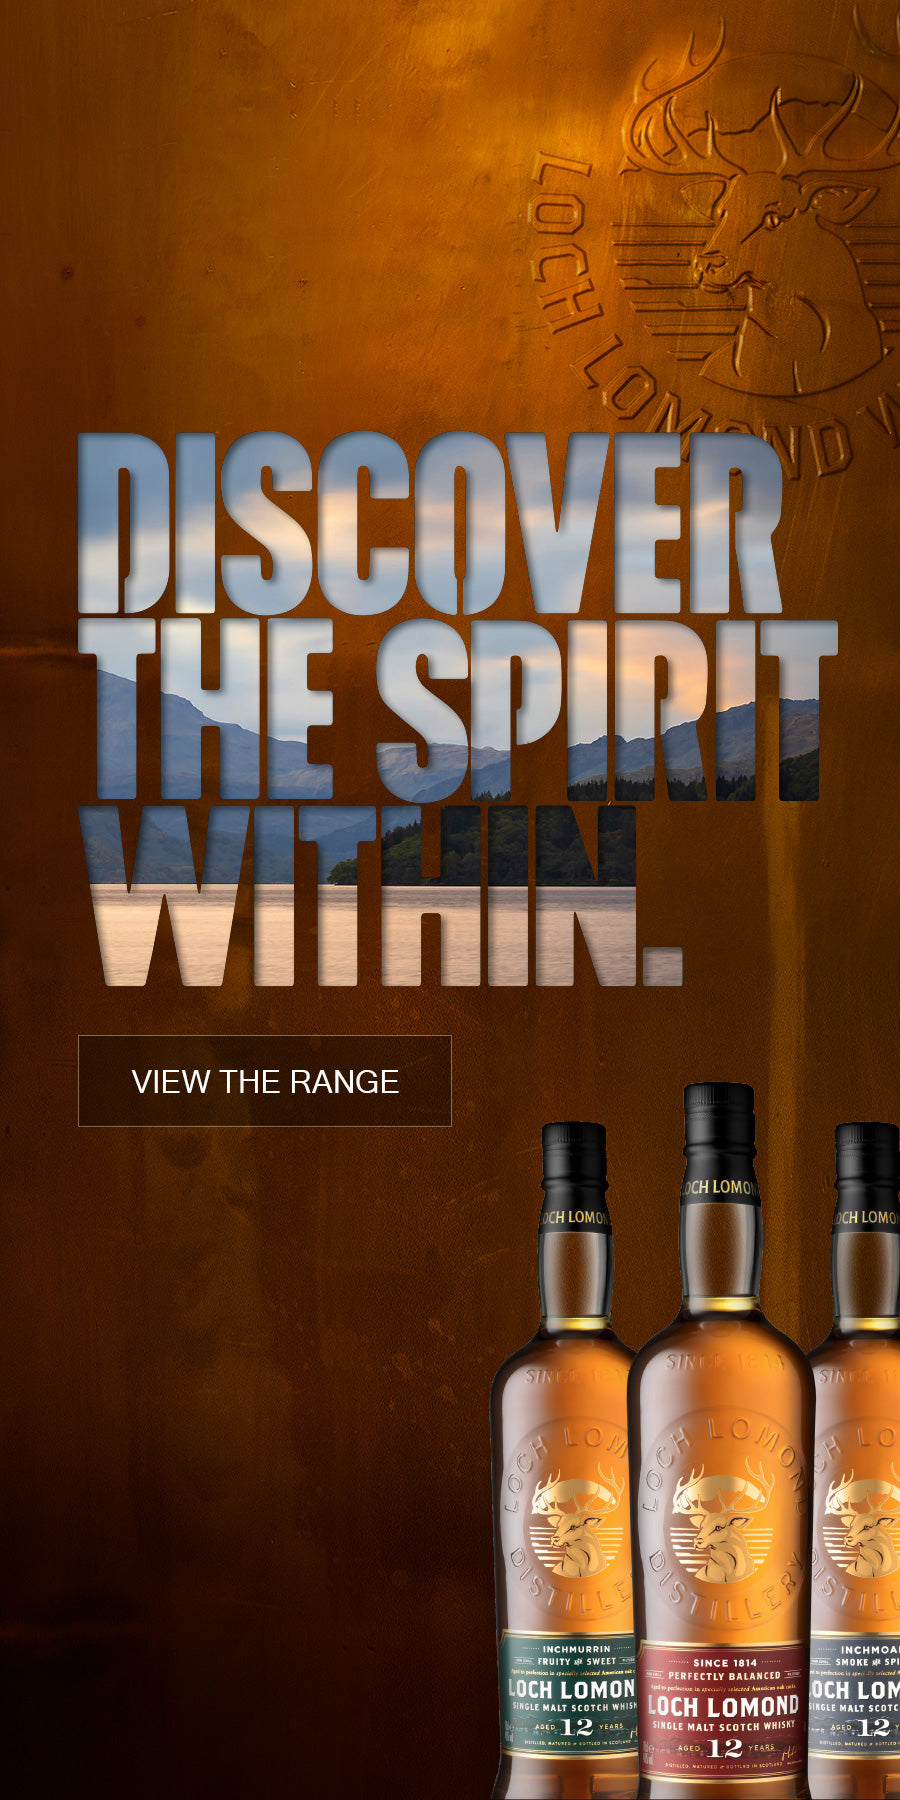 Discover the Spirit Within